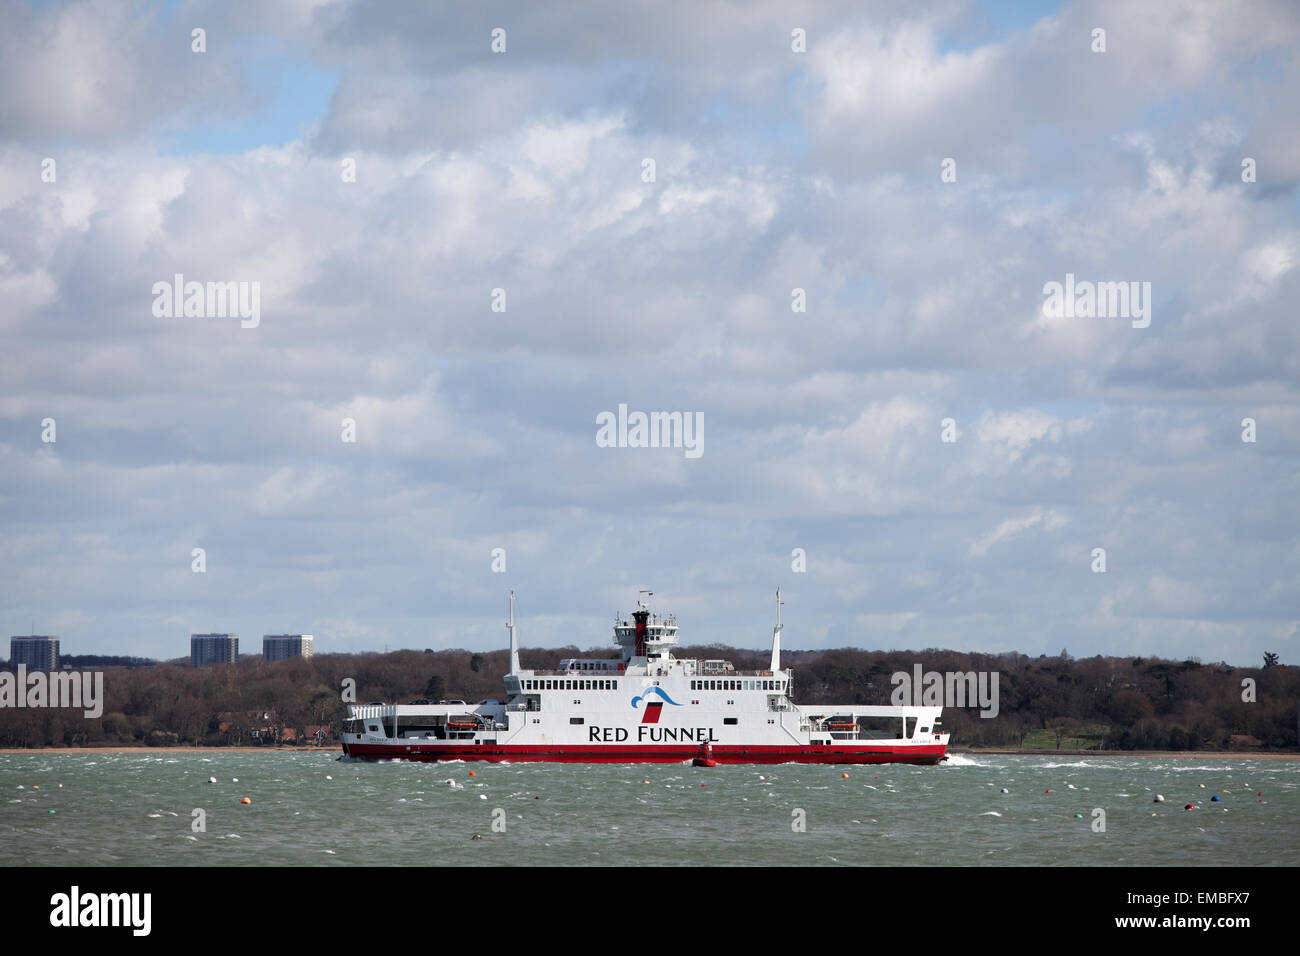 Red Funnel Ferry the Red Eagle traveling between Southampton and the Isle of Wight - Stock Image